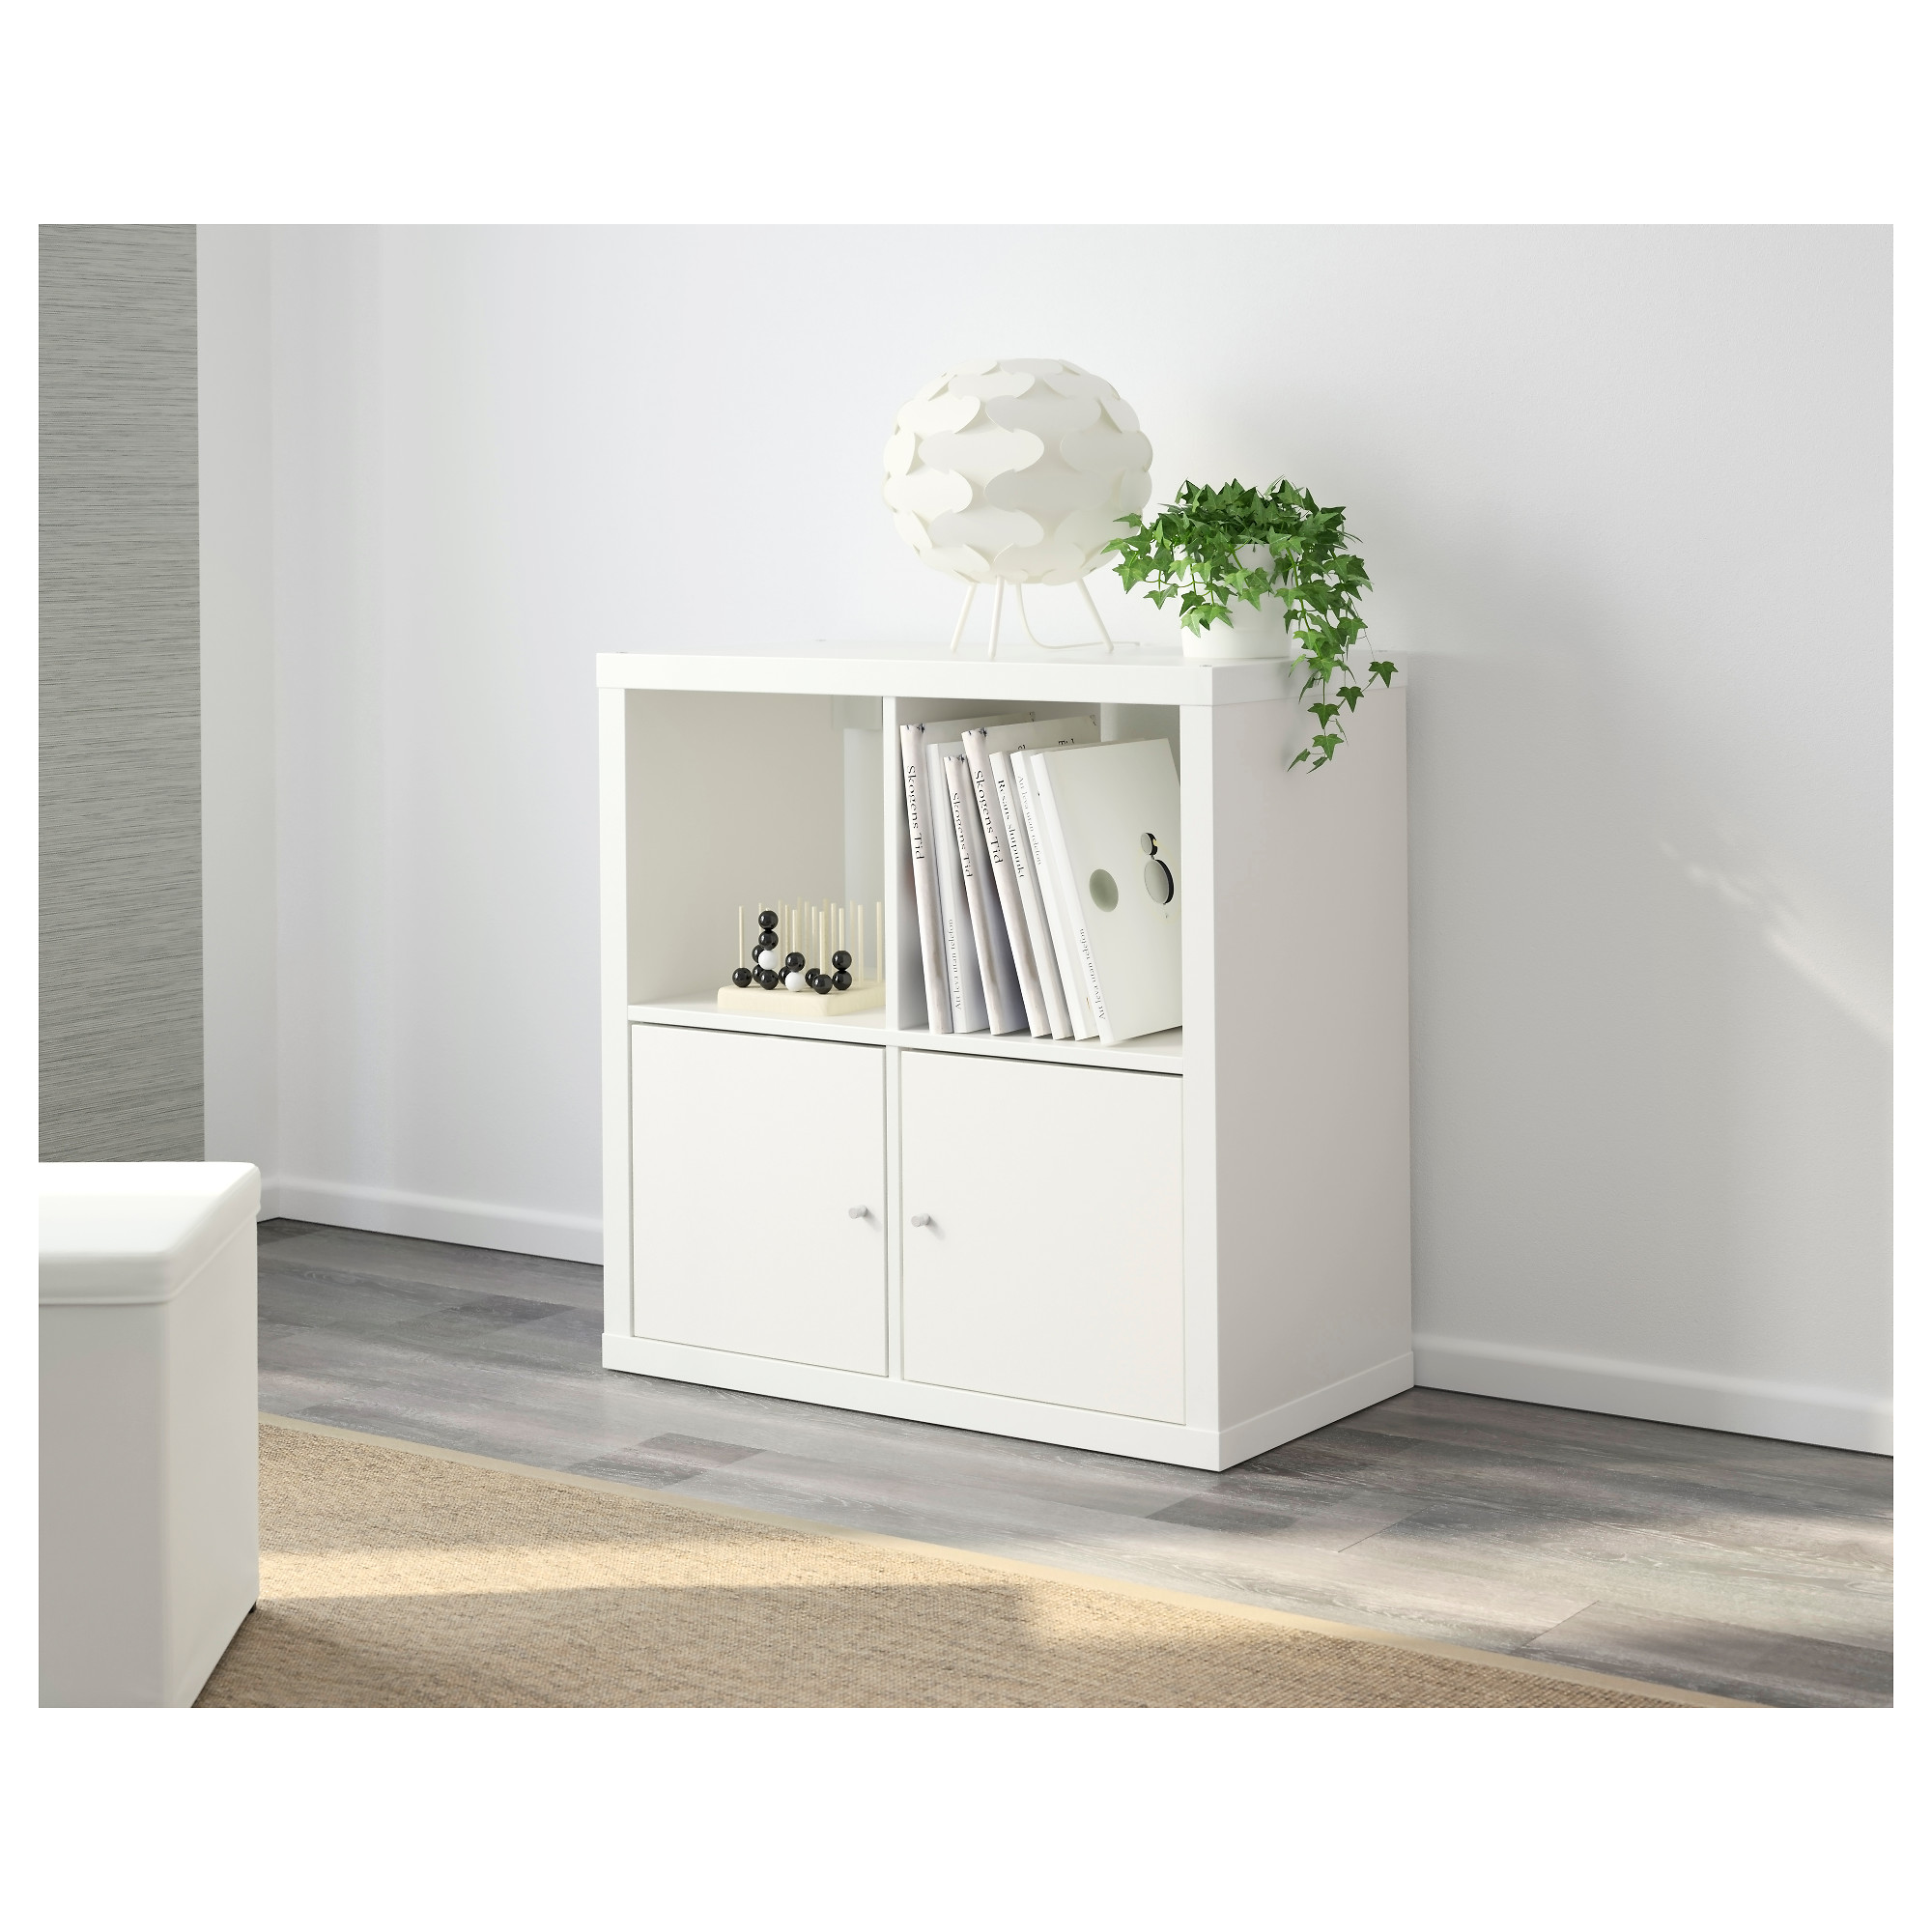 Ikea regal kallax 1x4  KALLAX Shelf unit - white - IKEA